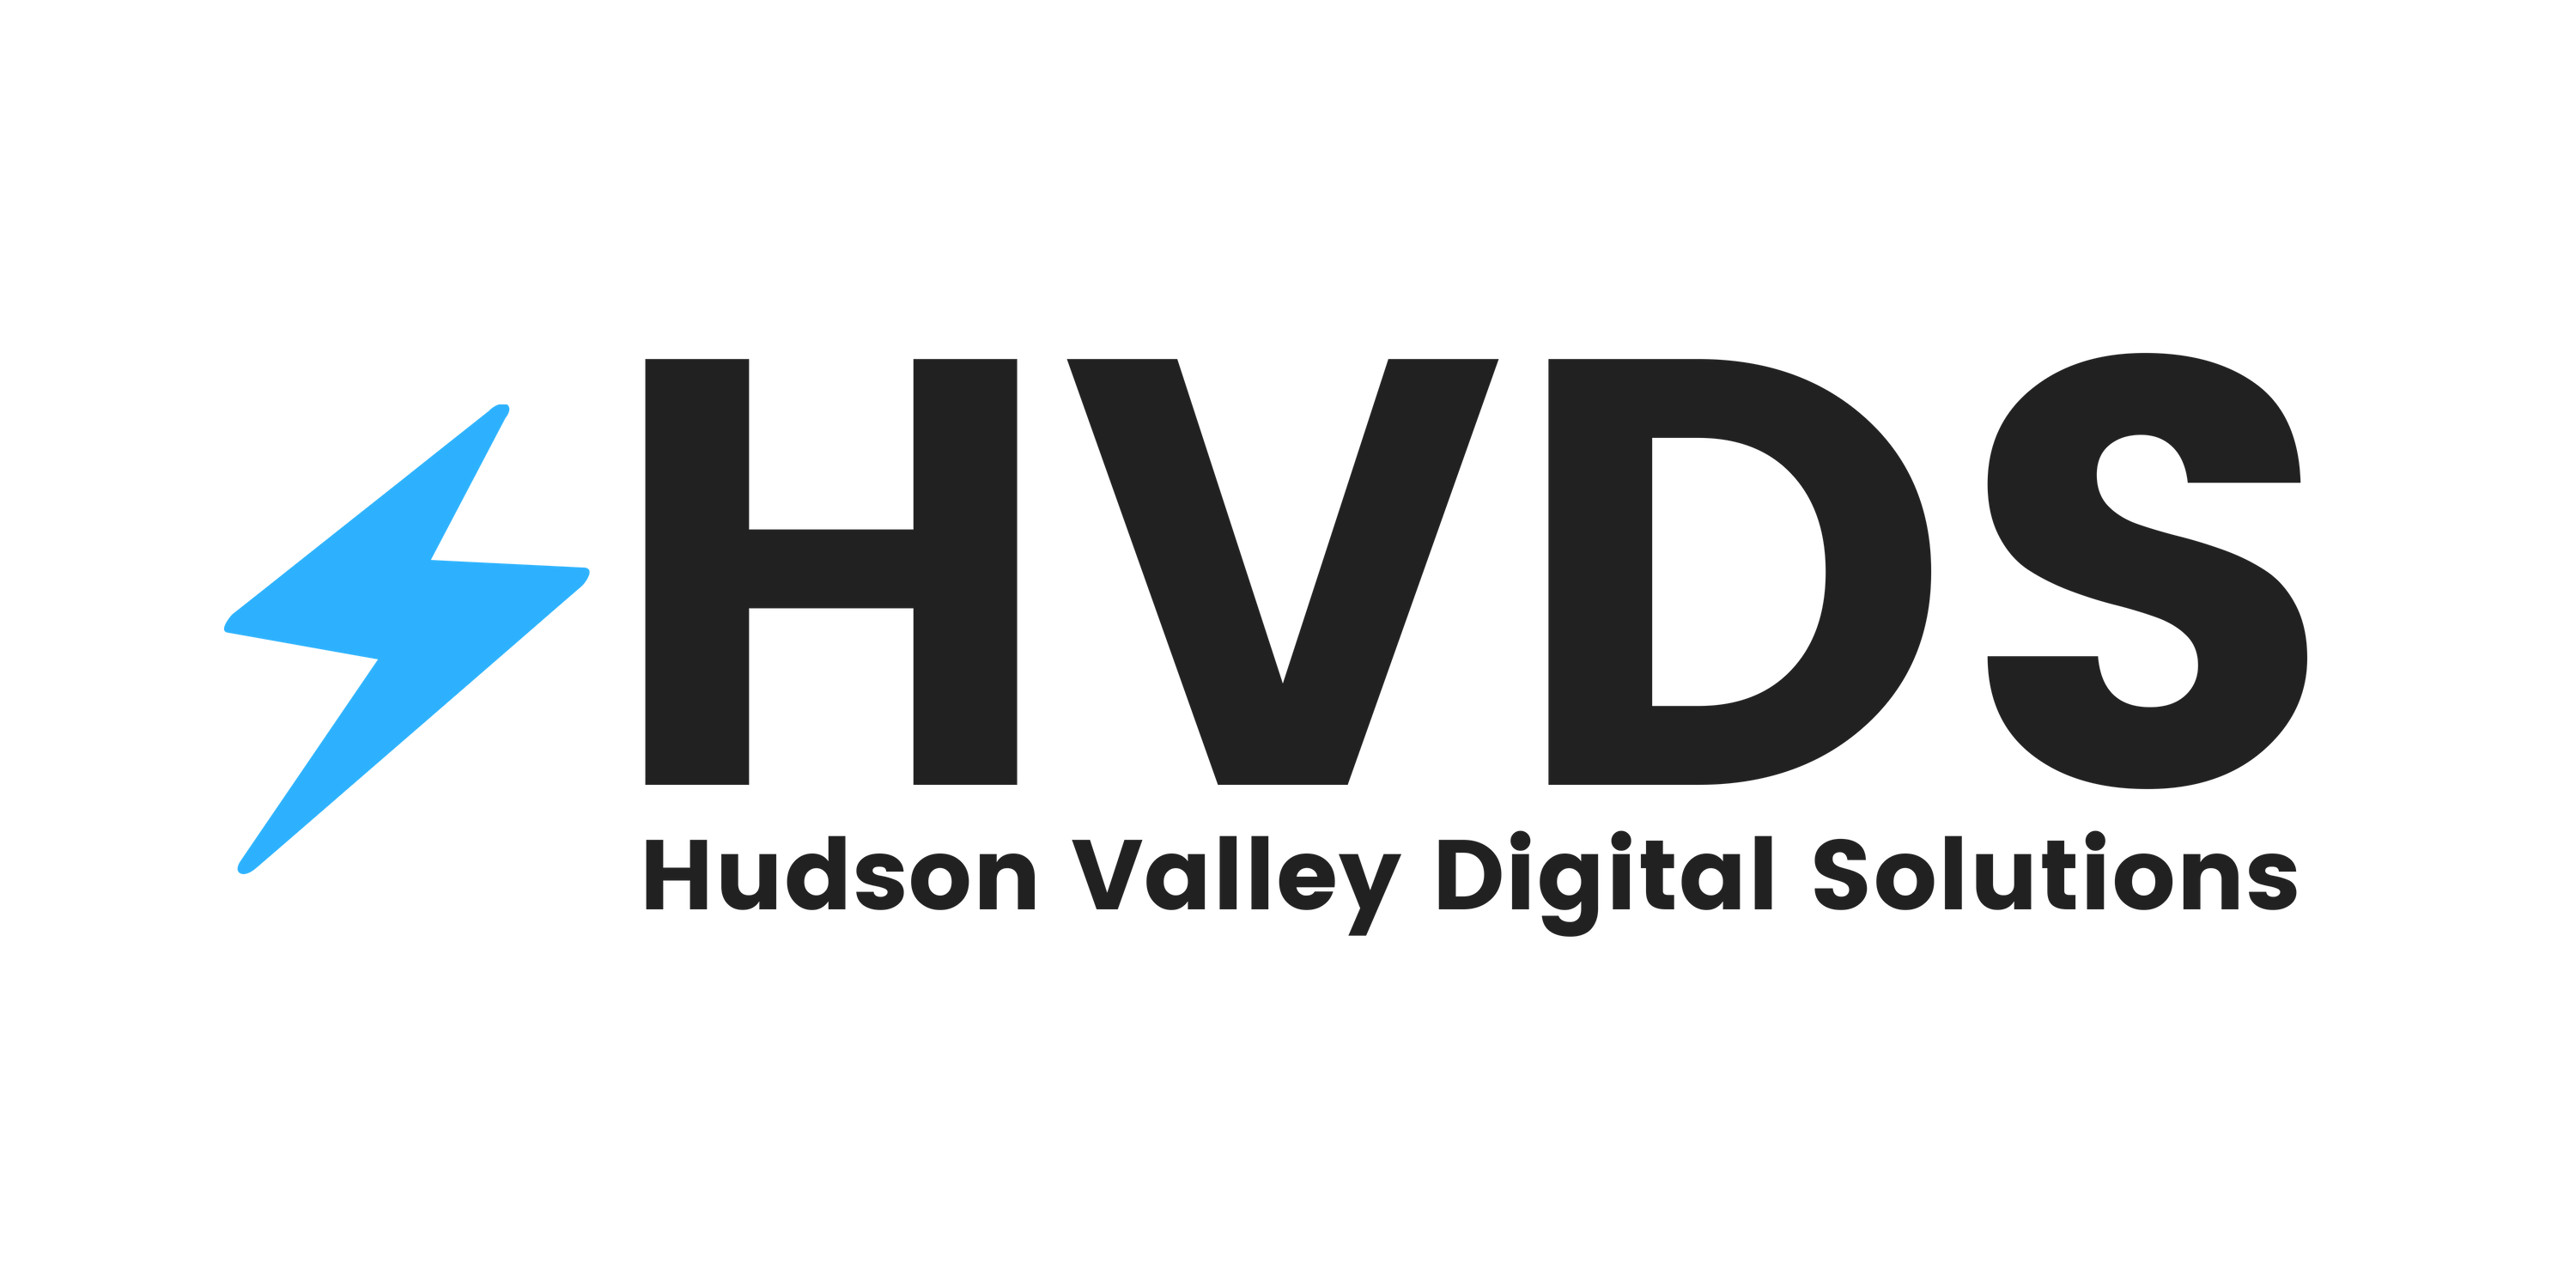 Hudson Valley Digital Solutions